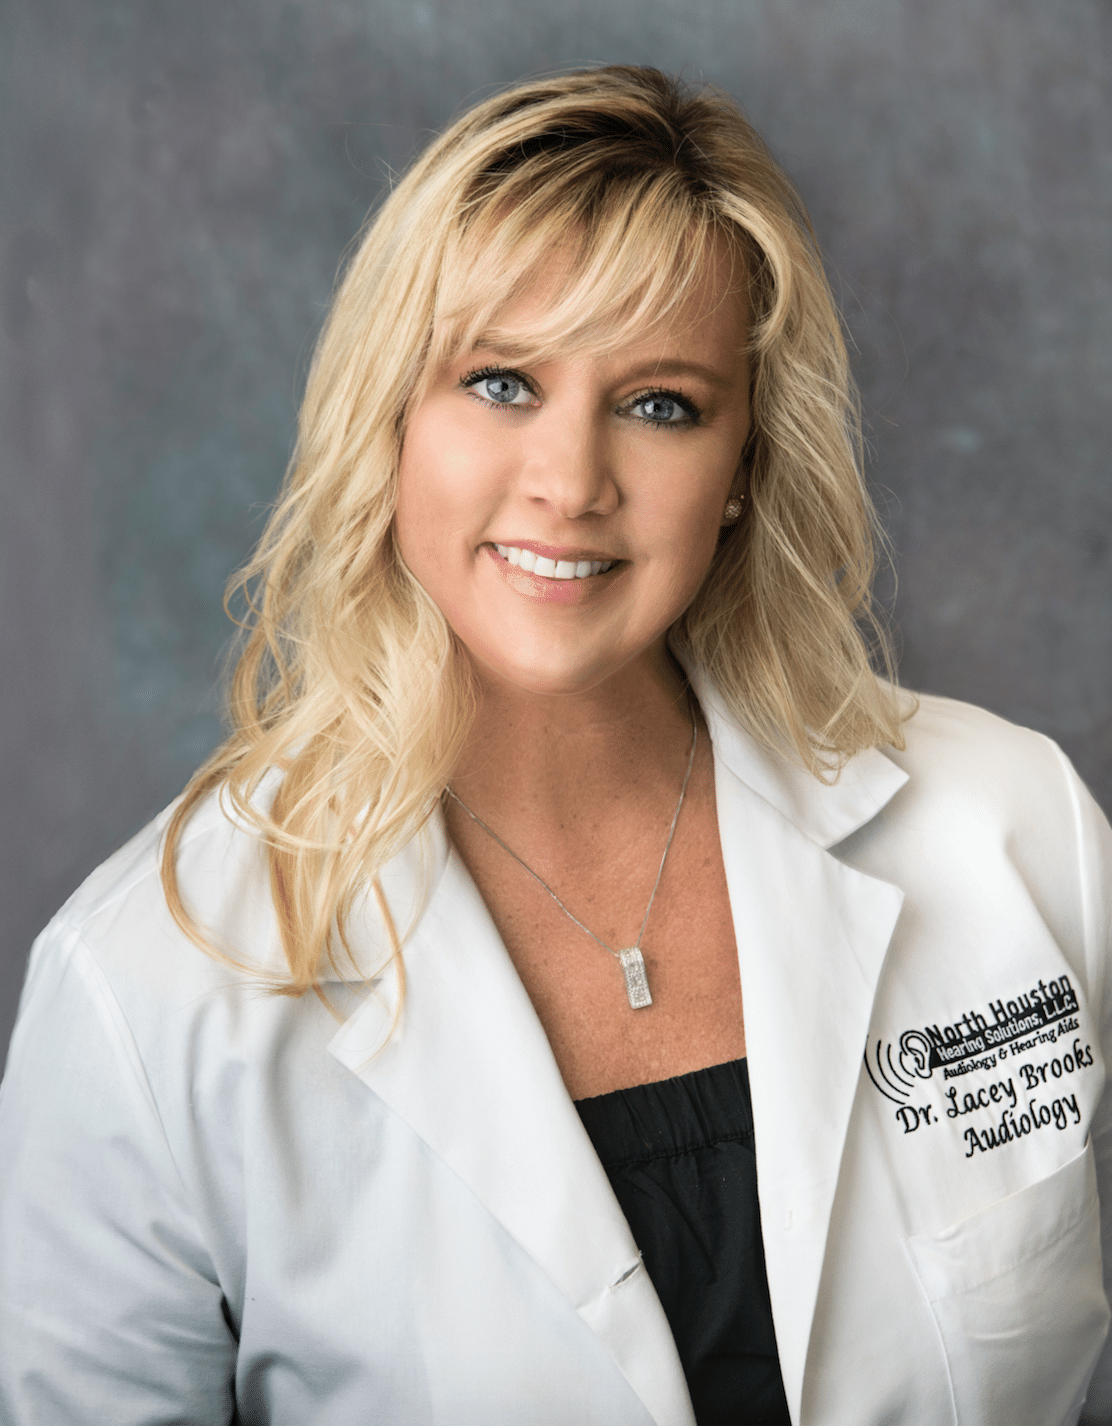 Dr. Lacey Brooks, CCC-A, FAAA Doctor of Audiology | North Houston Hearing